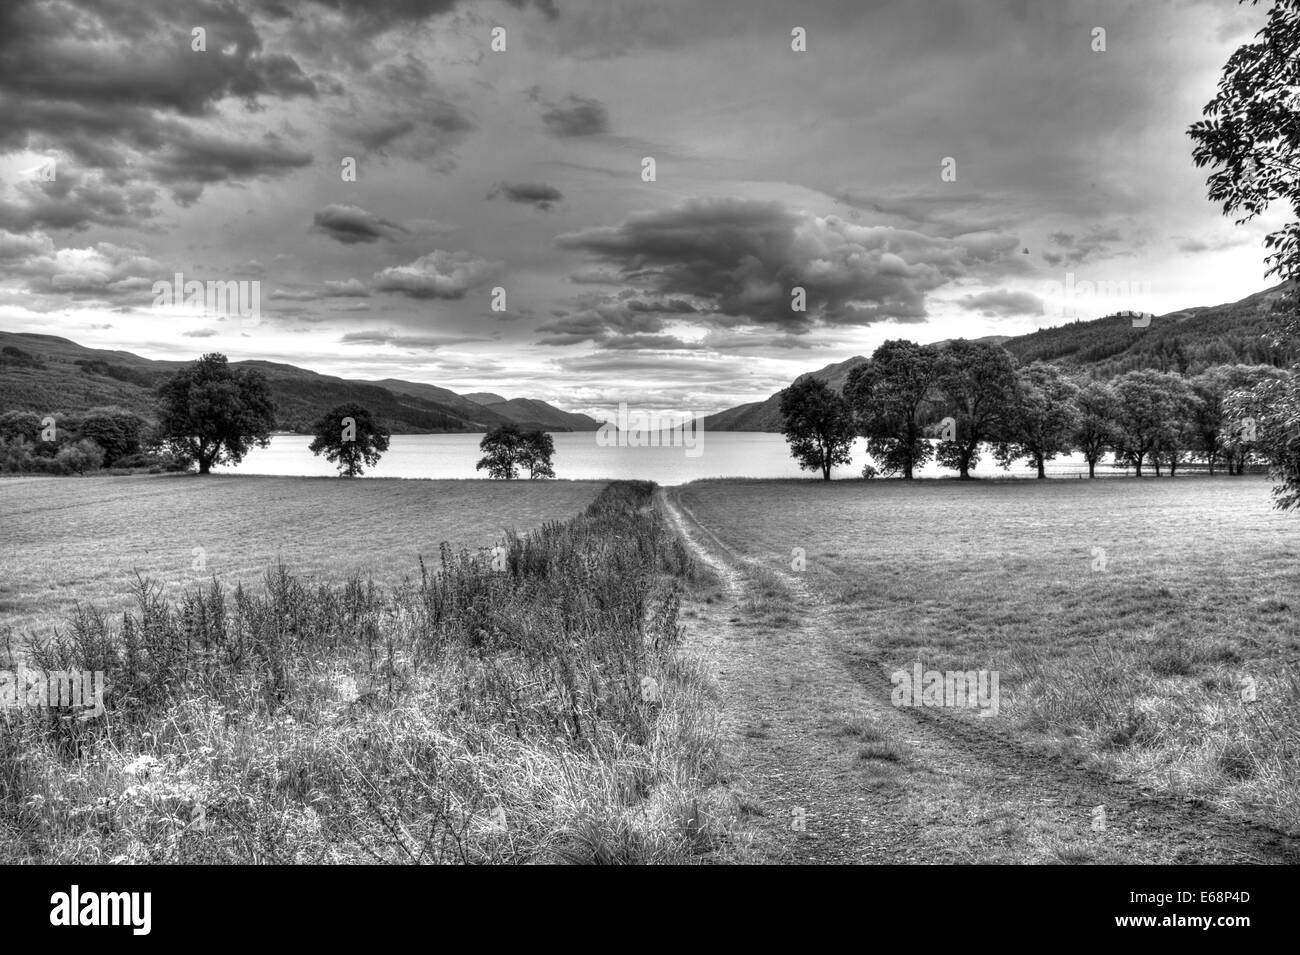 Black and white Landscape shot at the edge of Loch Ness - Stock Image